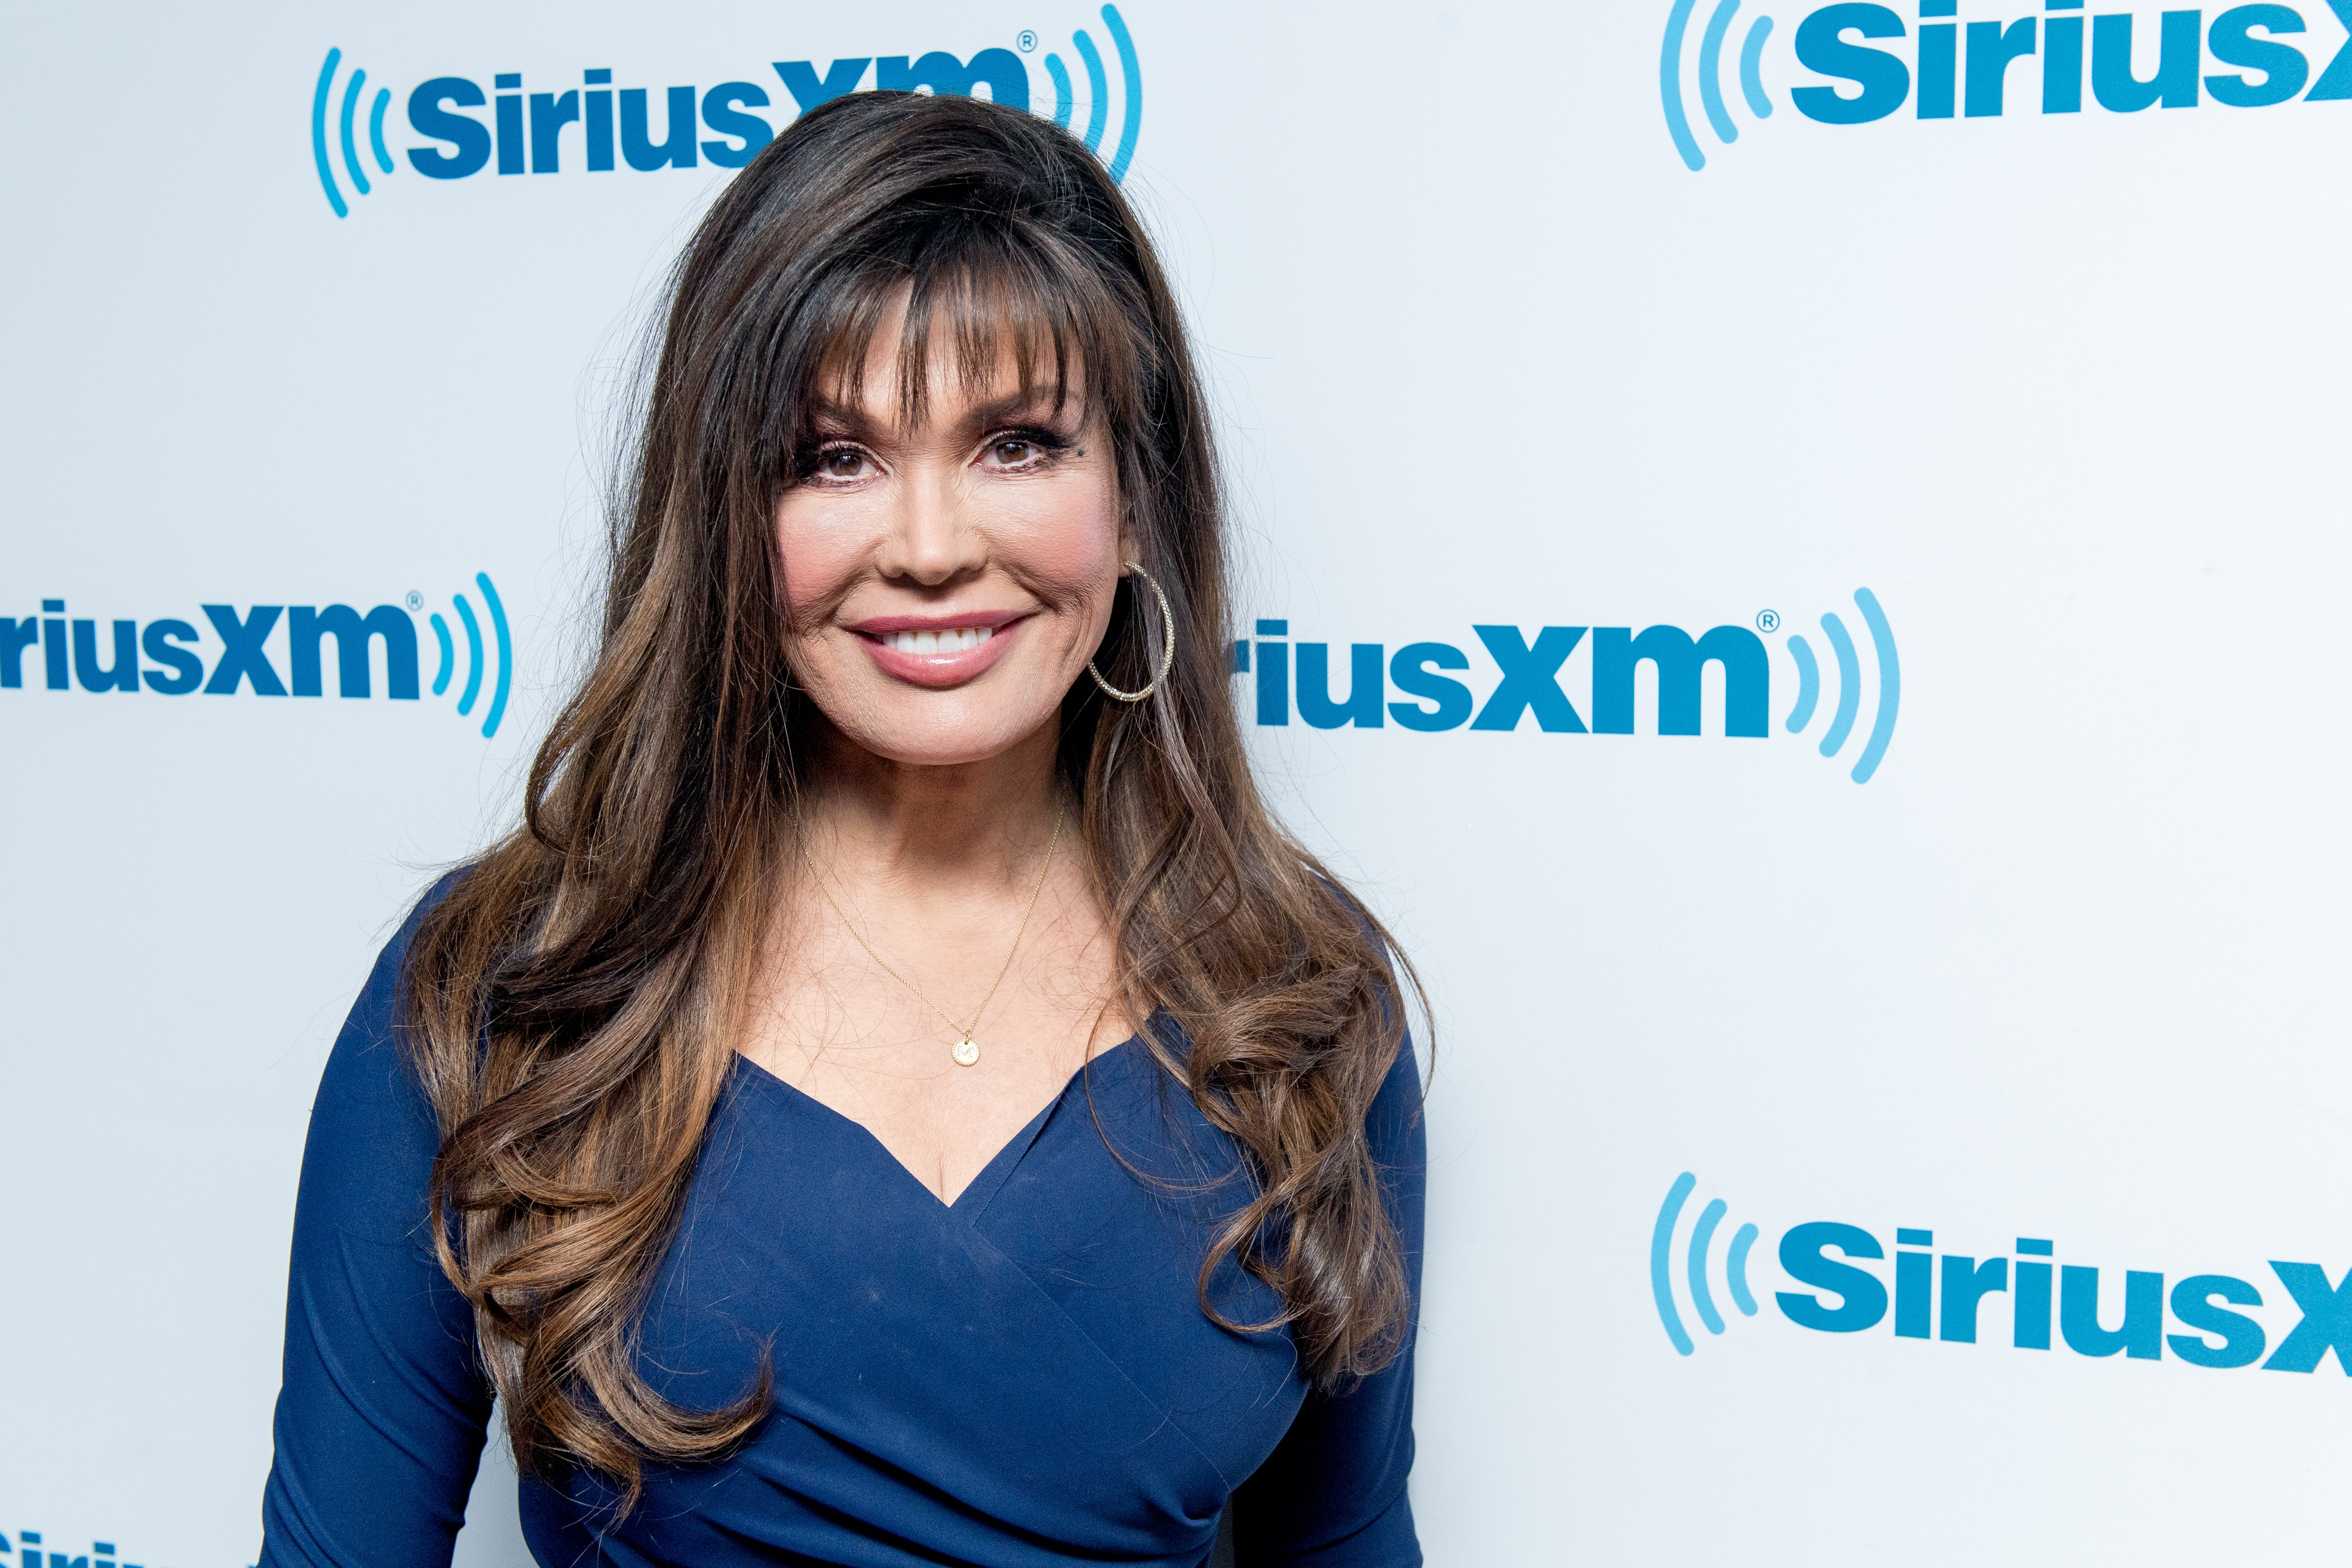 Marie Osmond pictured visiting the Andy Cohen show at SiriusXM Studios, January 2018 in New York City.   Photo: Getty Images